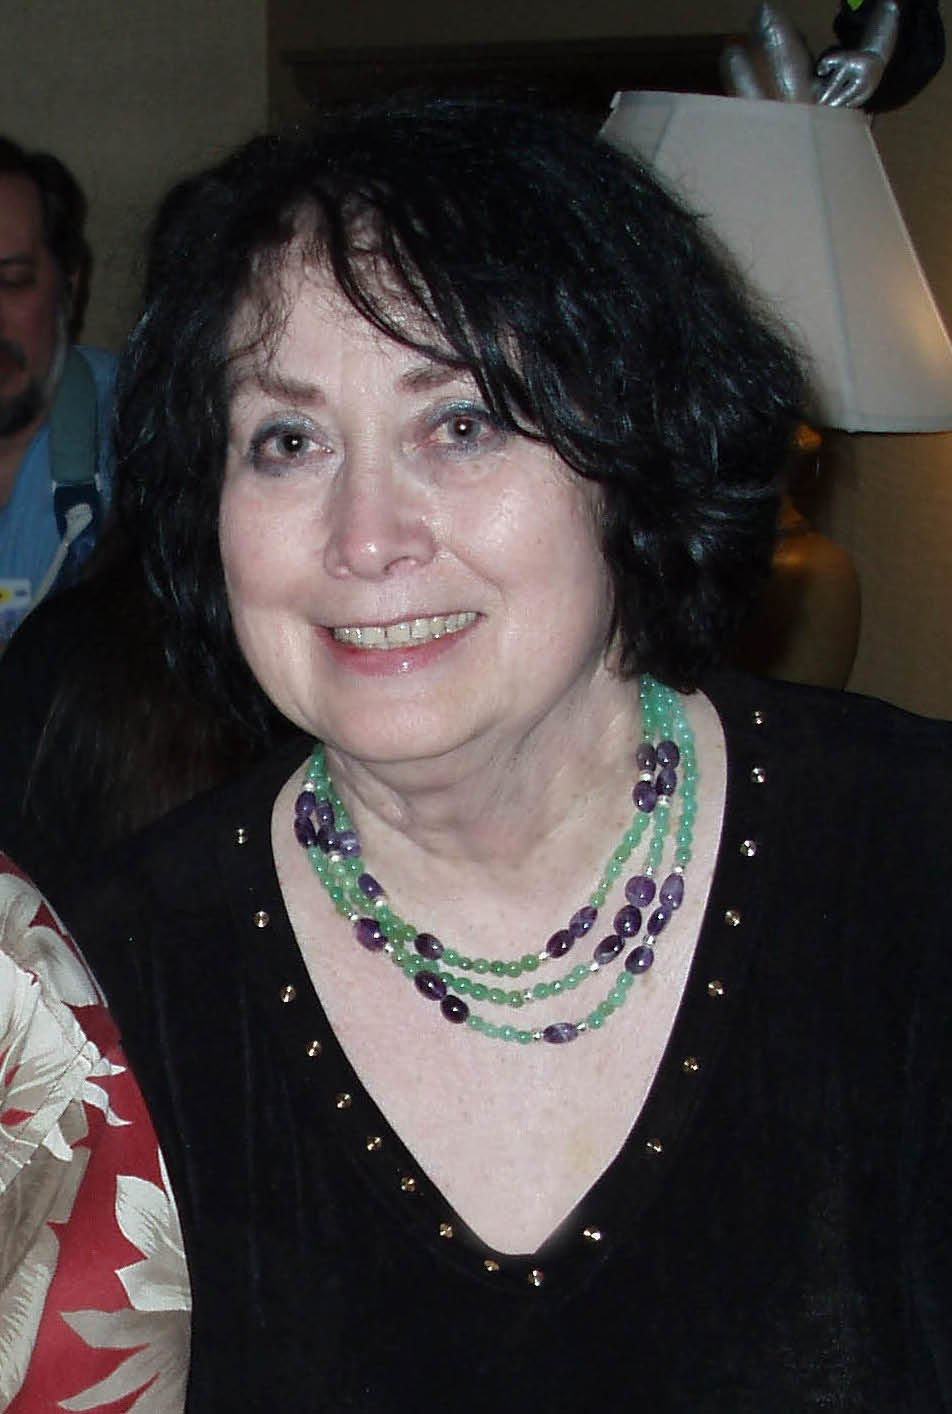 Cherryh at NorWesCon in 2006